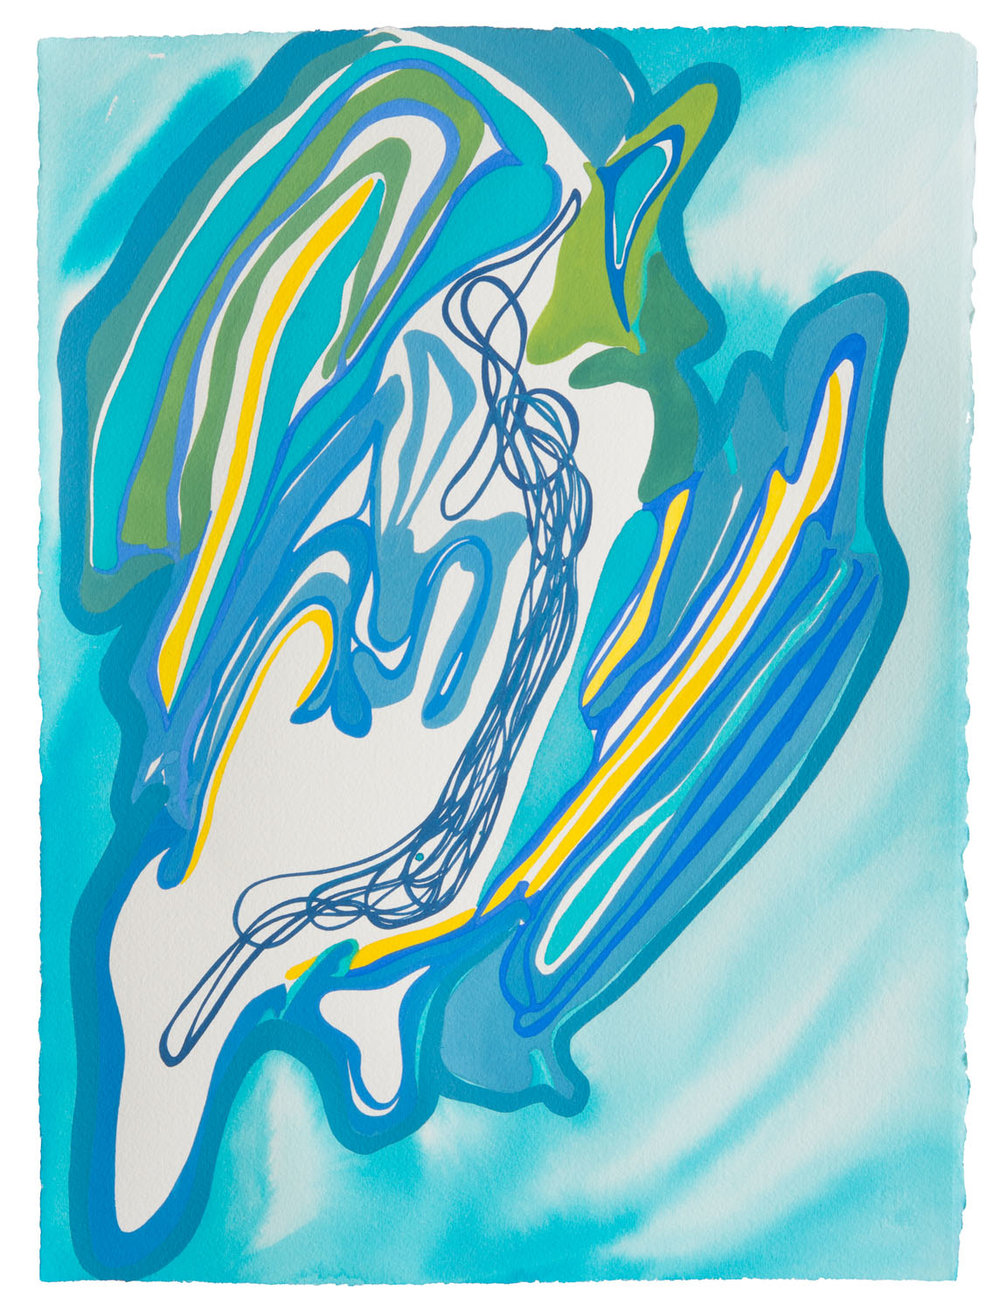 untitled ag, 2017 15 x 11 1/2 inches gouache on paper 100-132